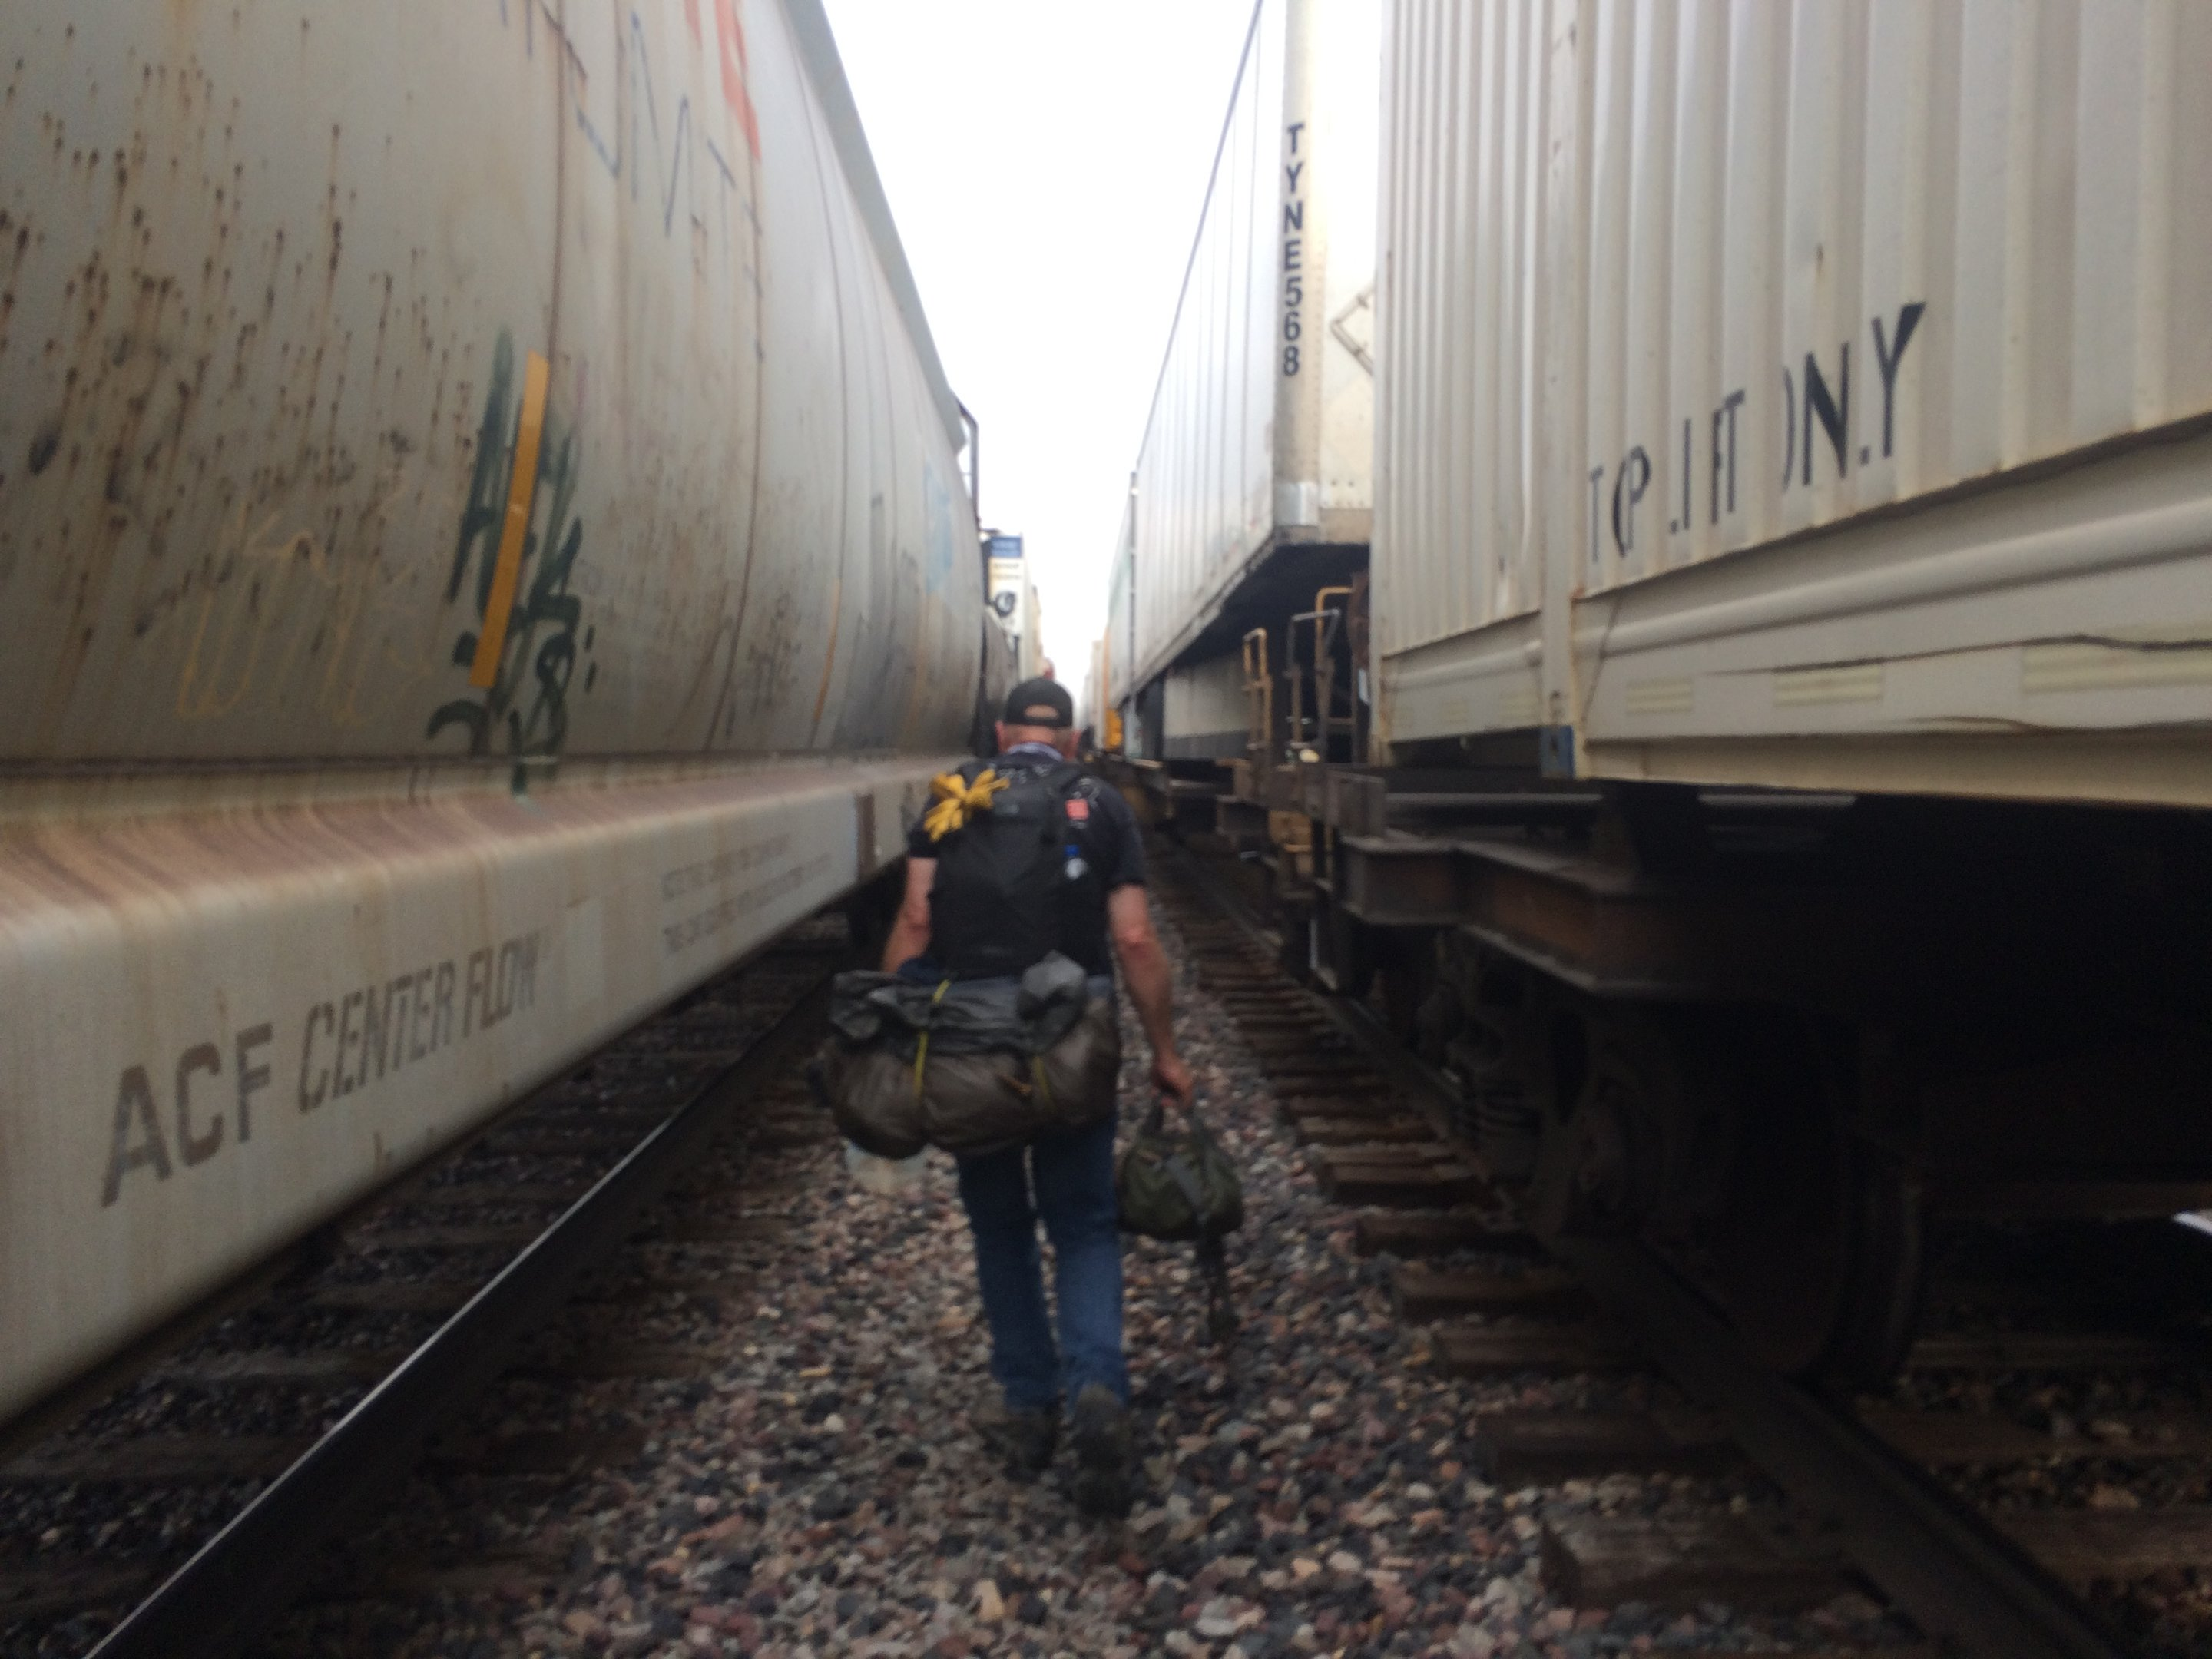 25-jpg.52546_Wisconsin to Montana Freight Hop, Hi-Line Subdivision_Travel Stories_Squat the Planet_12:11 PM